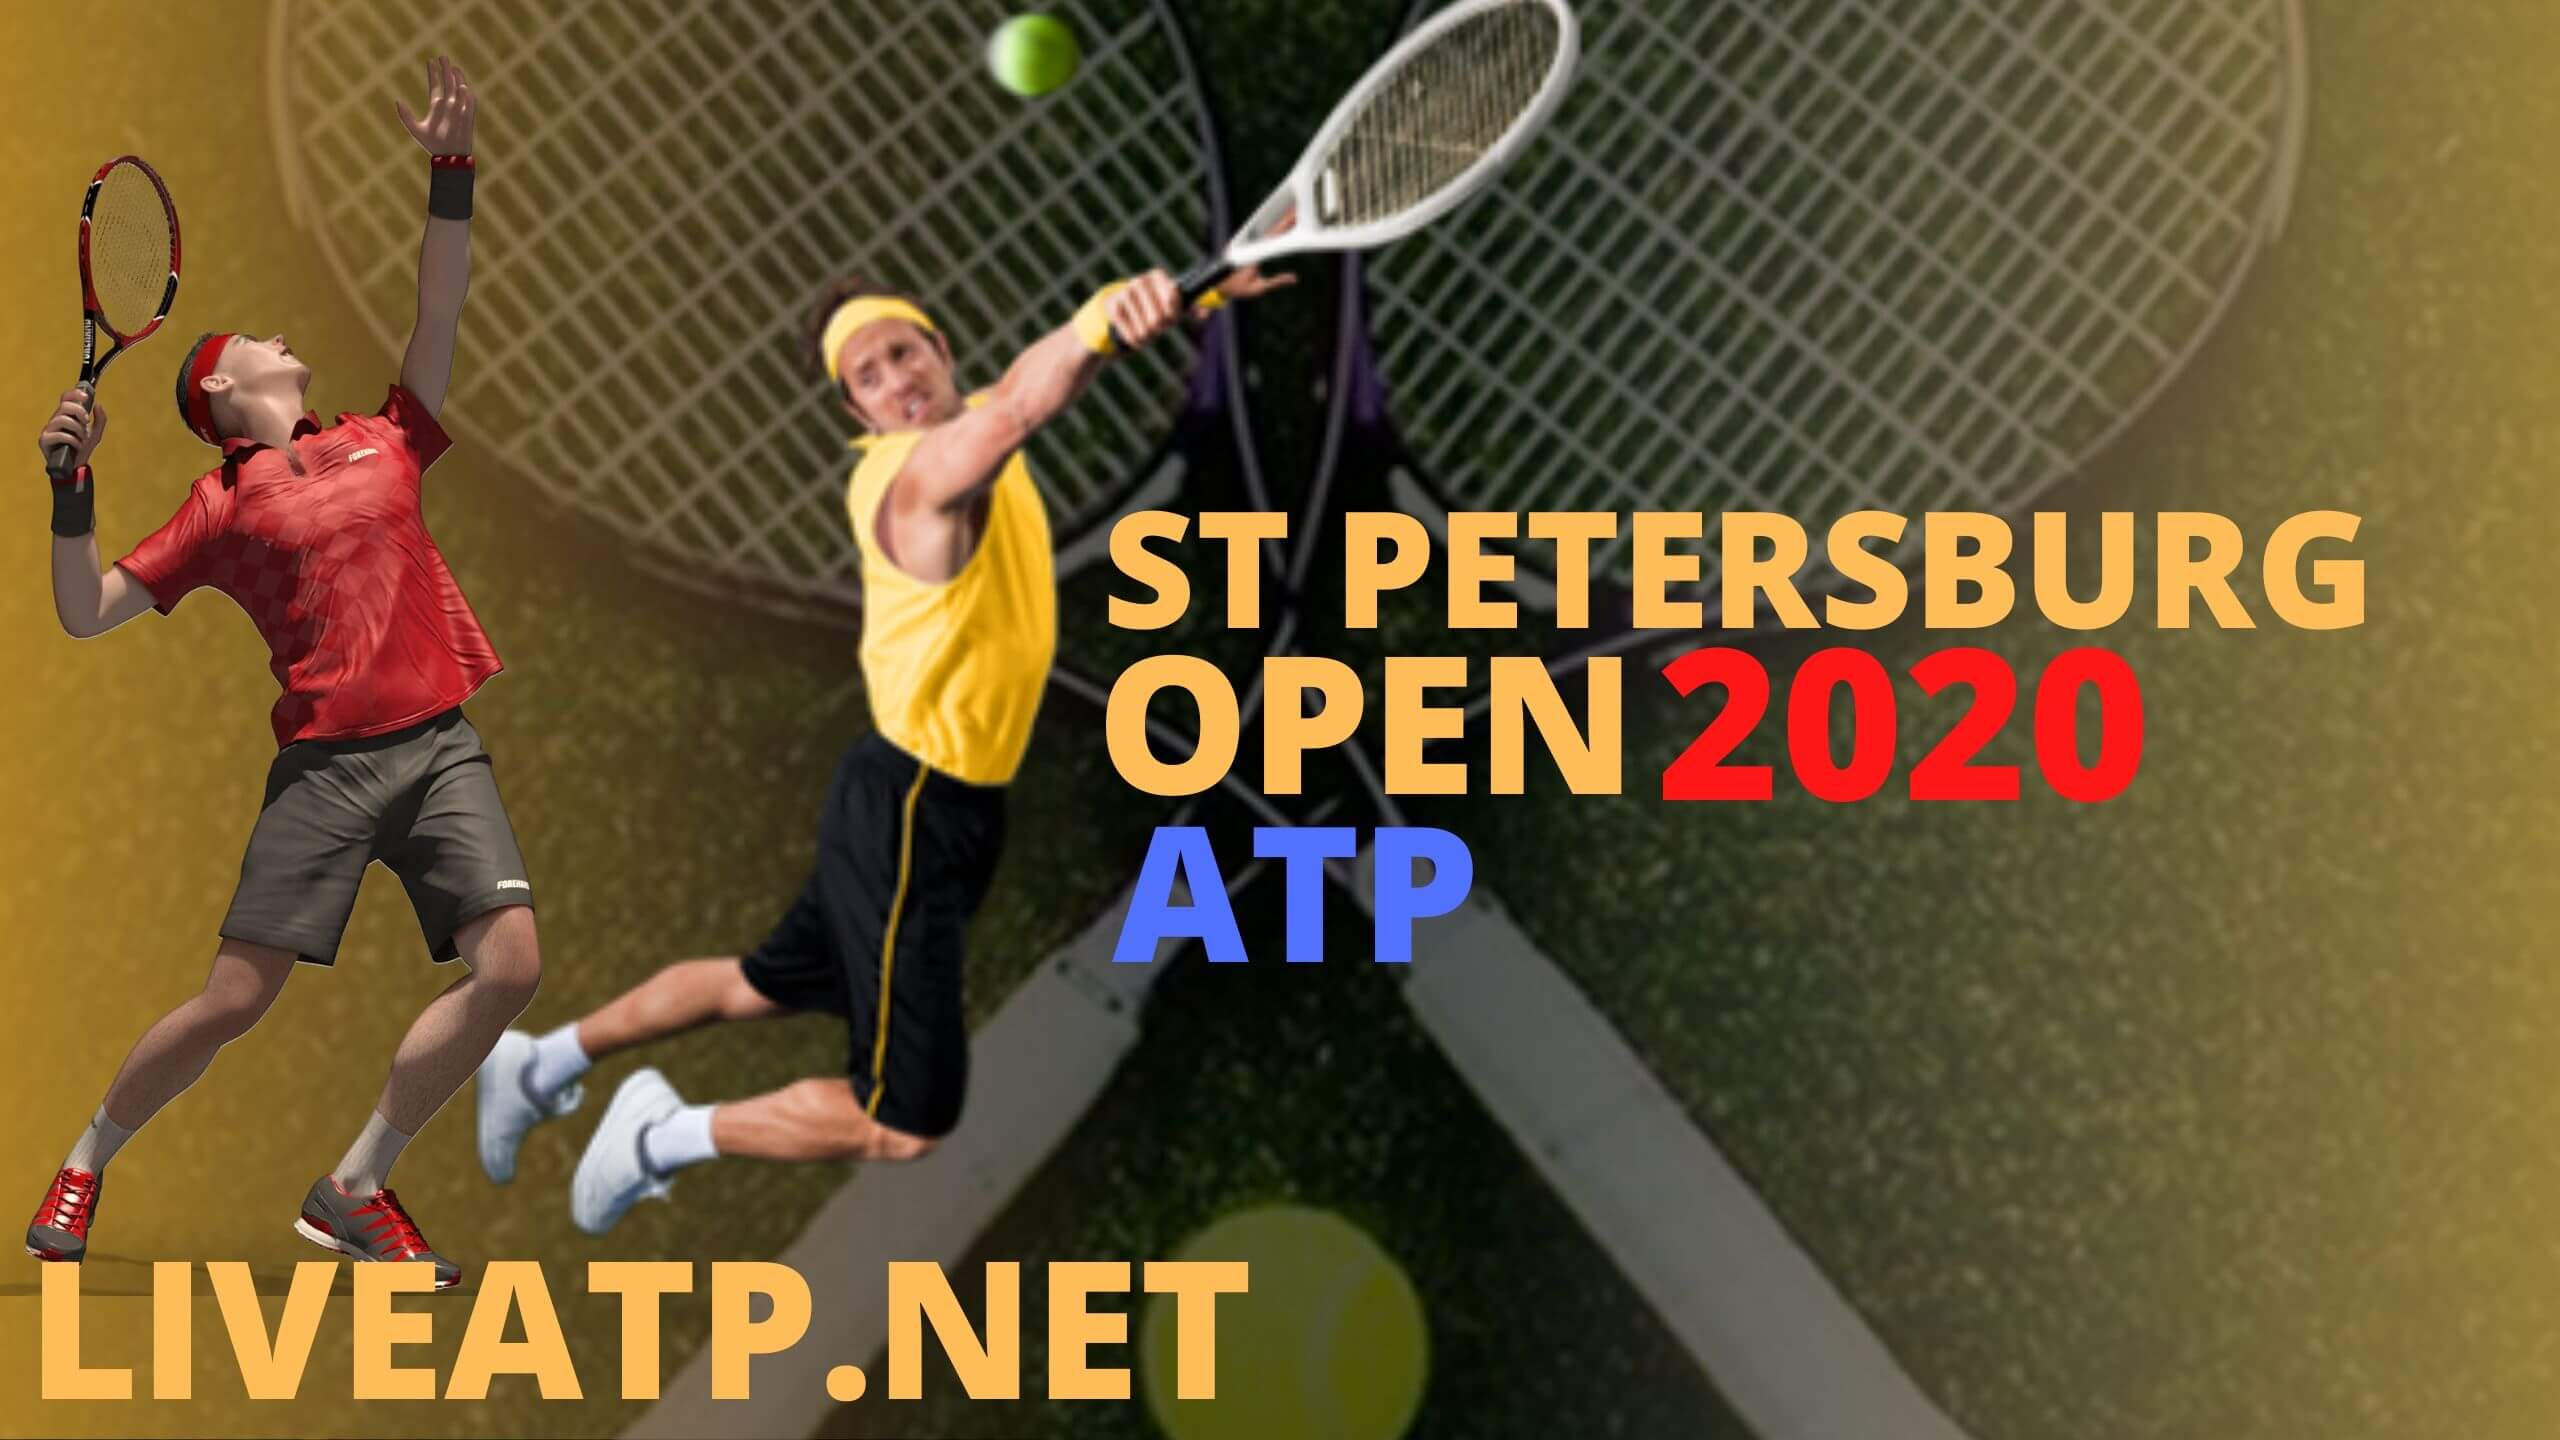 St Petersburg Open Live Stream 2020 | Day 1